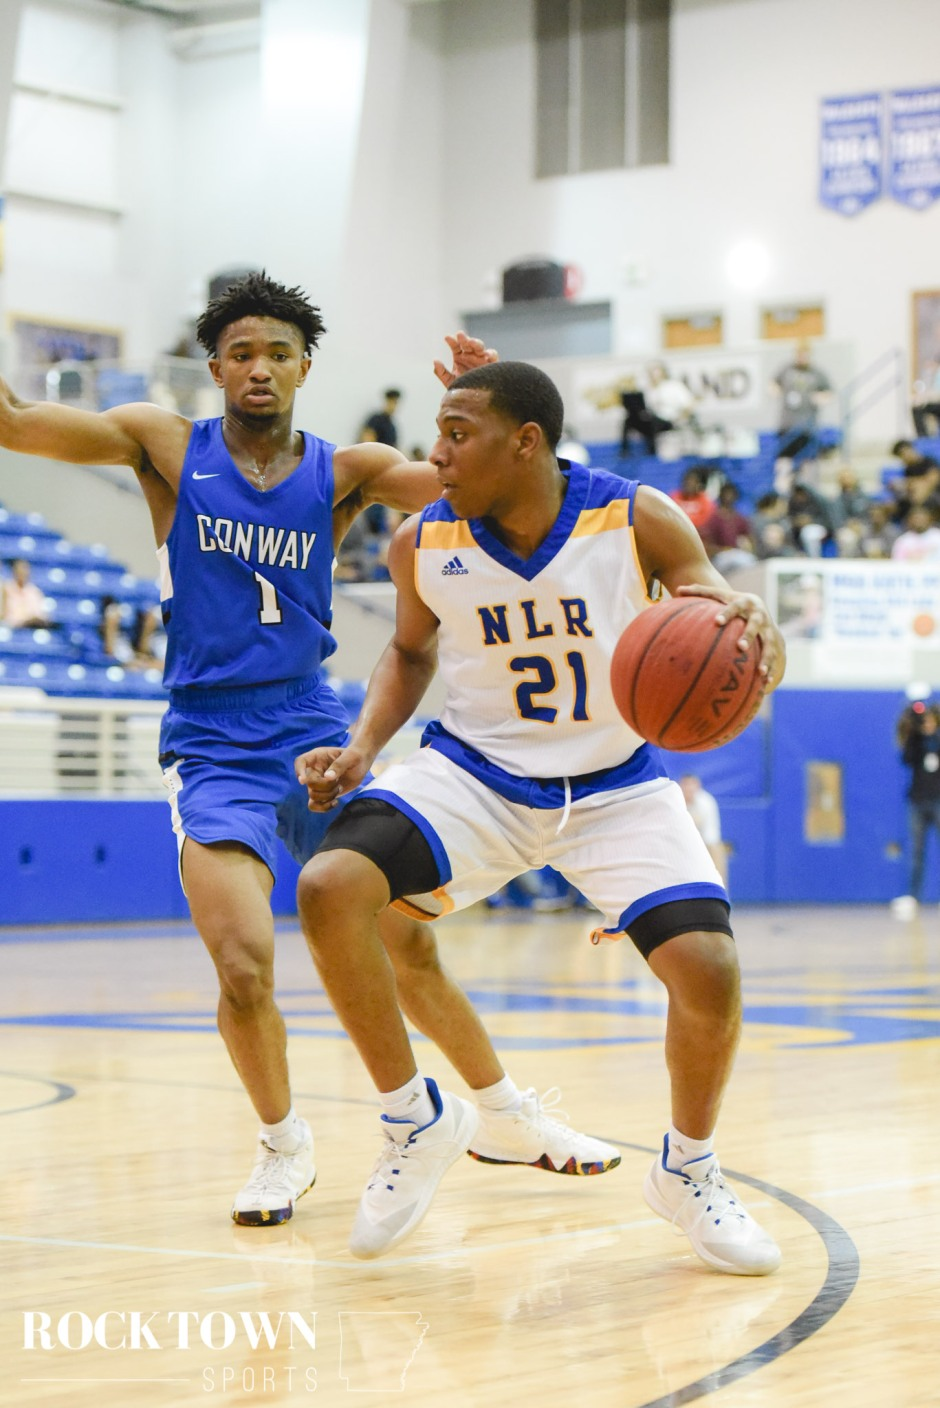 Conway_NLR_bball19(i)-60